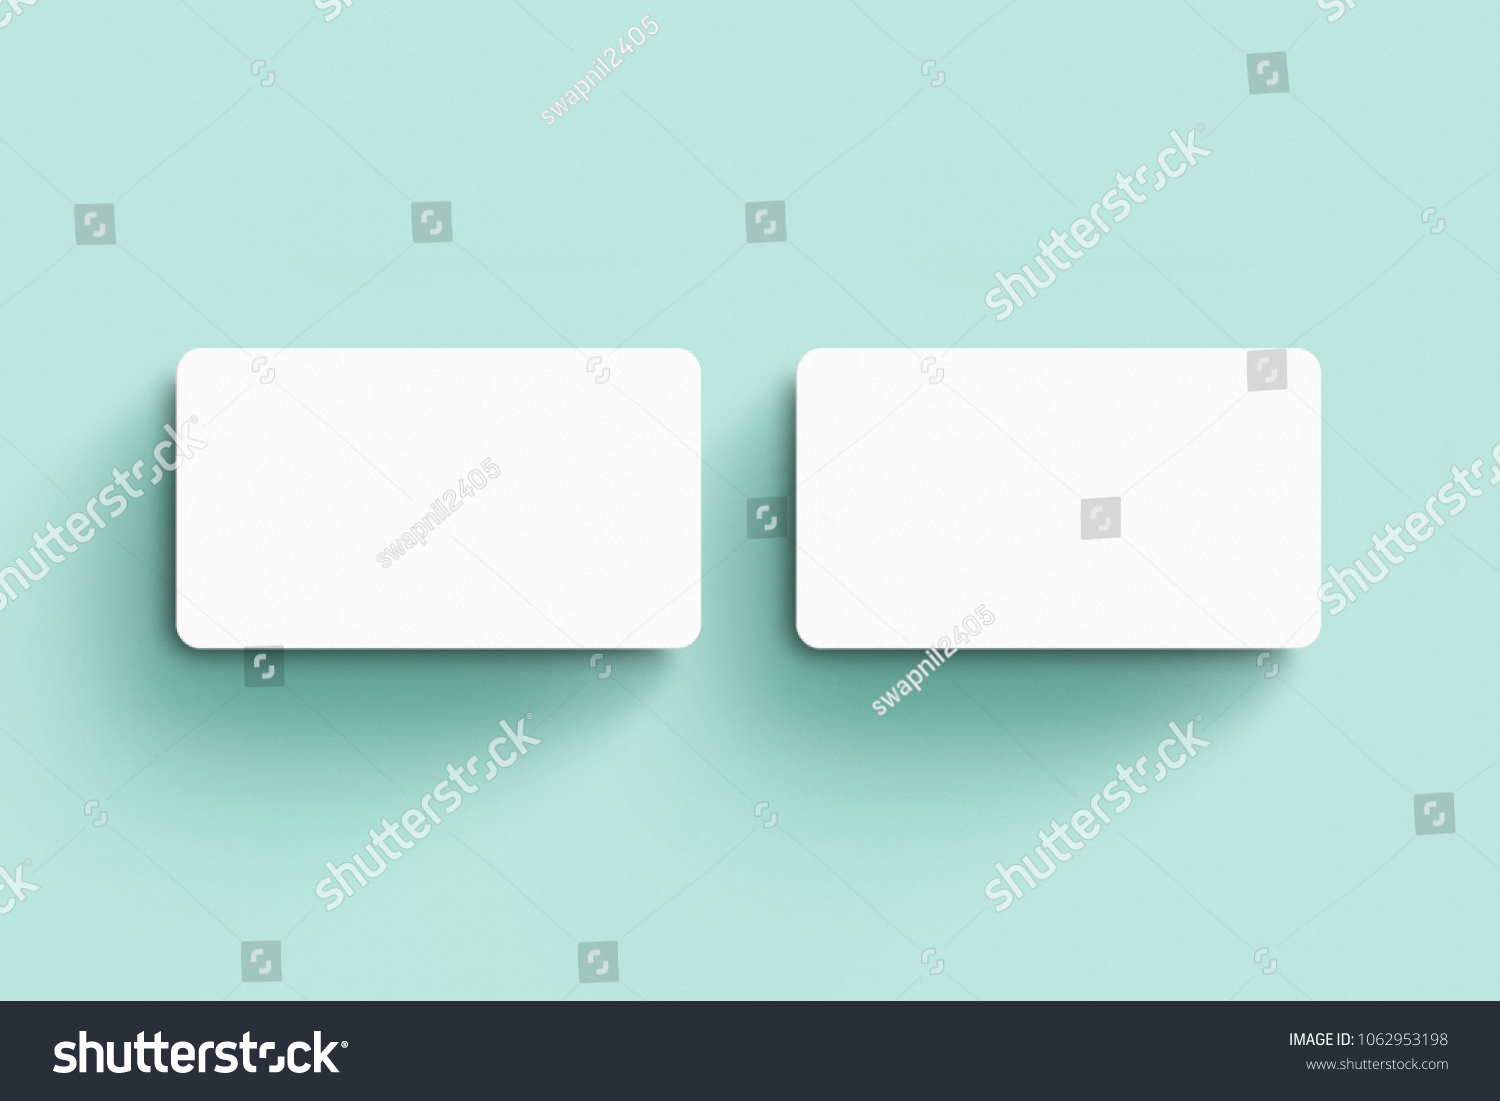 Rounded Business Card Mockup Template Stock Photo (Royalty Free ...